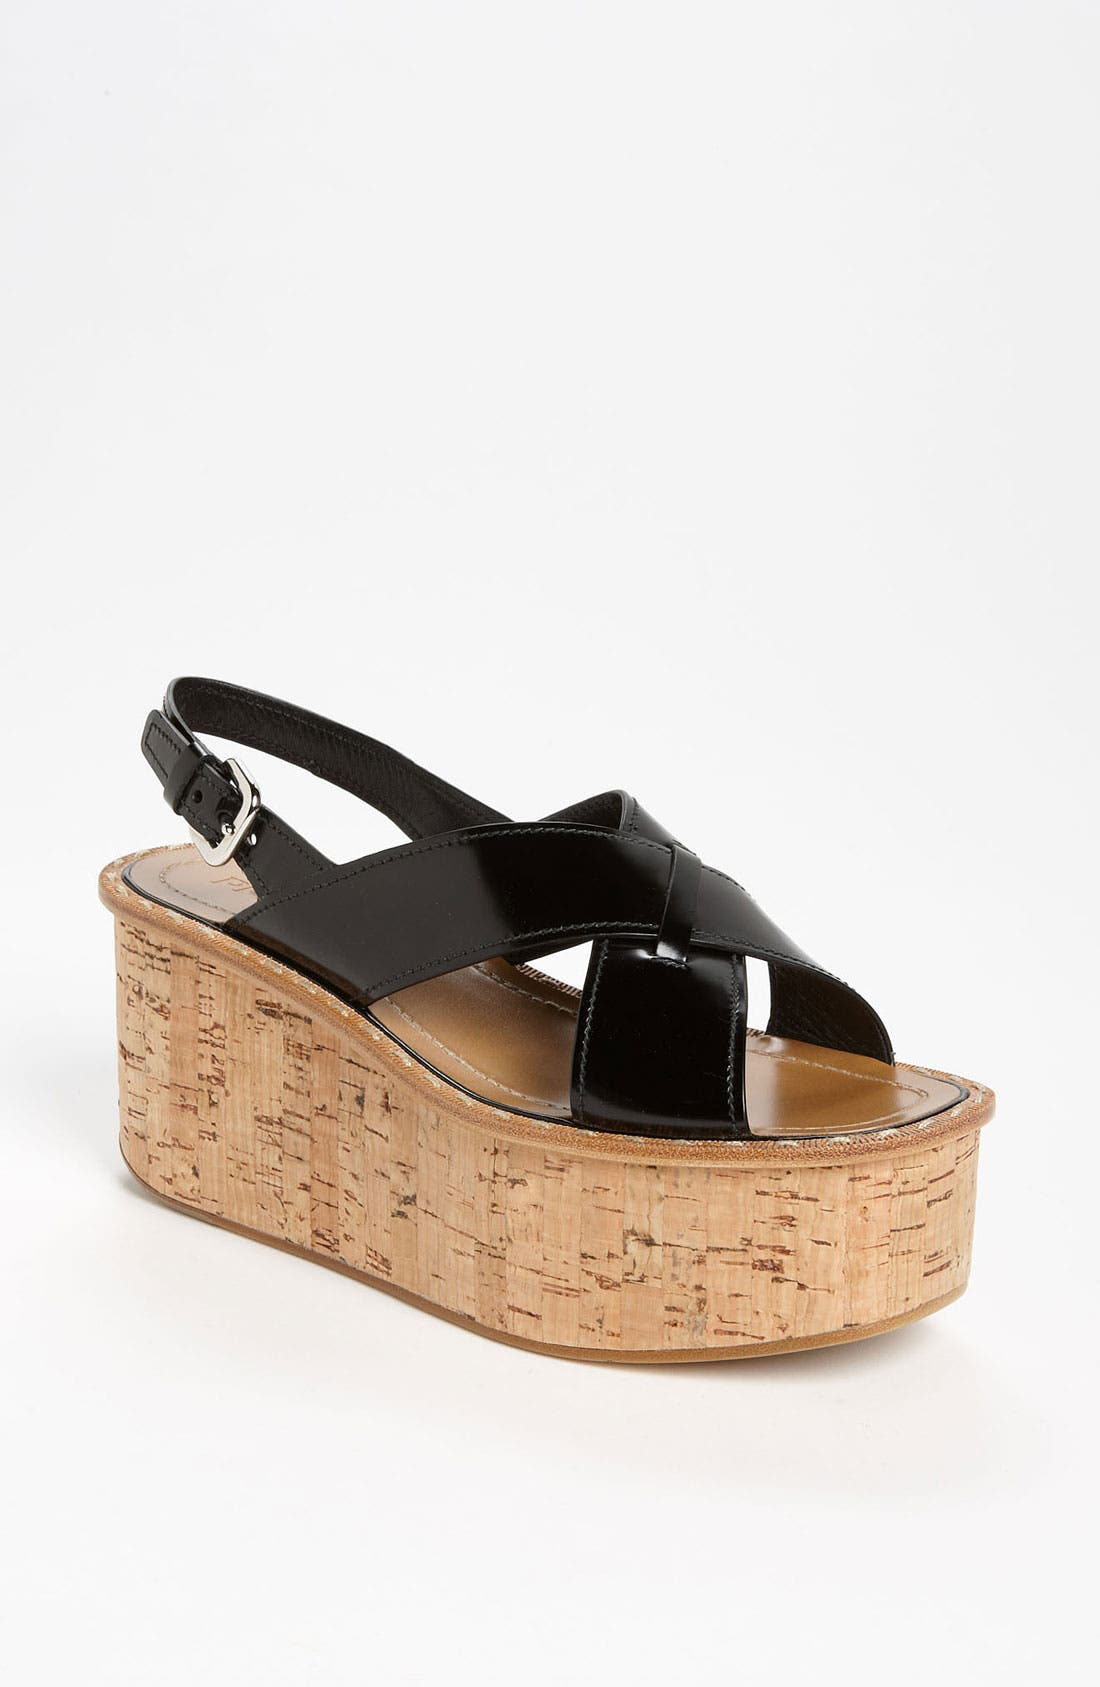 Main Image - Prada 'Criss Cross' Wedge Sandal